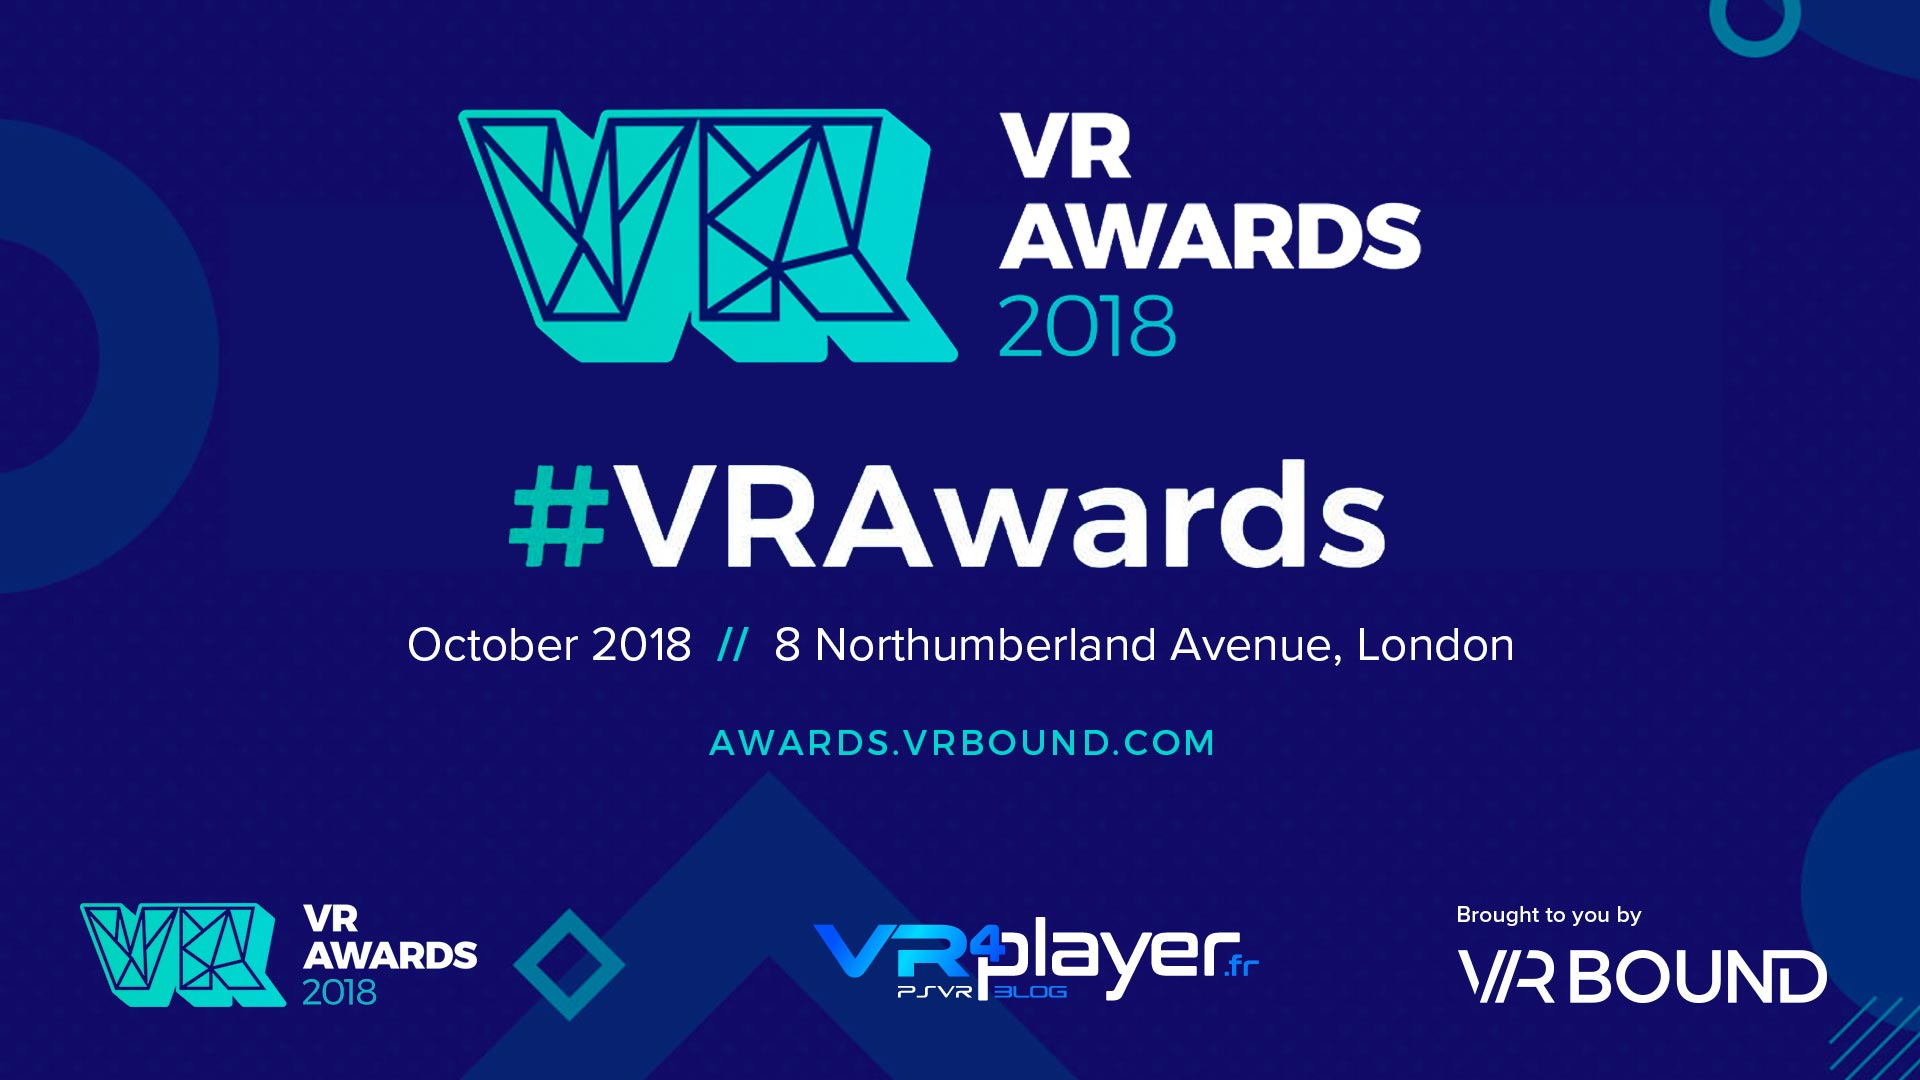 VR Awards 2018 - VR4player.fr